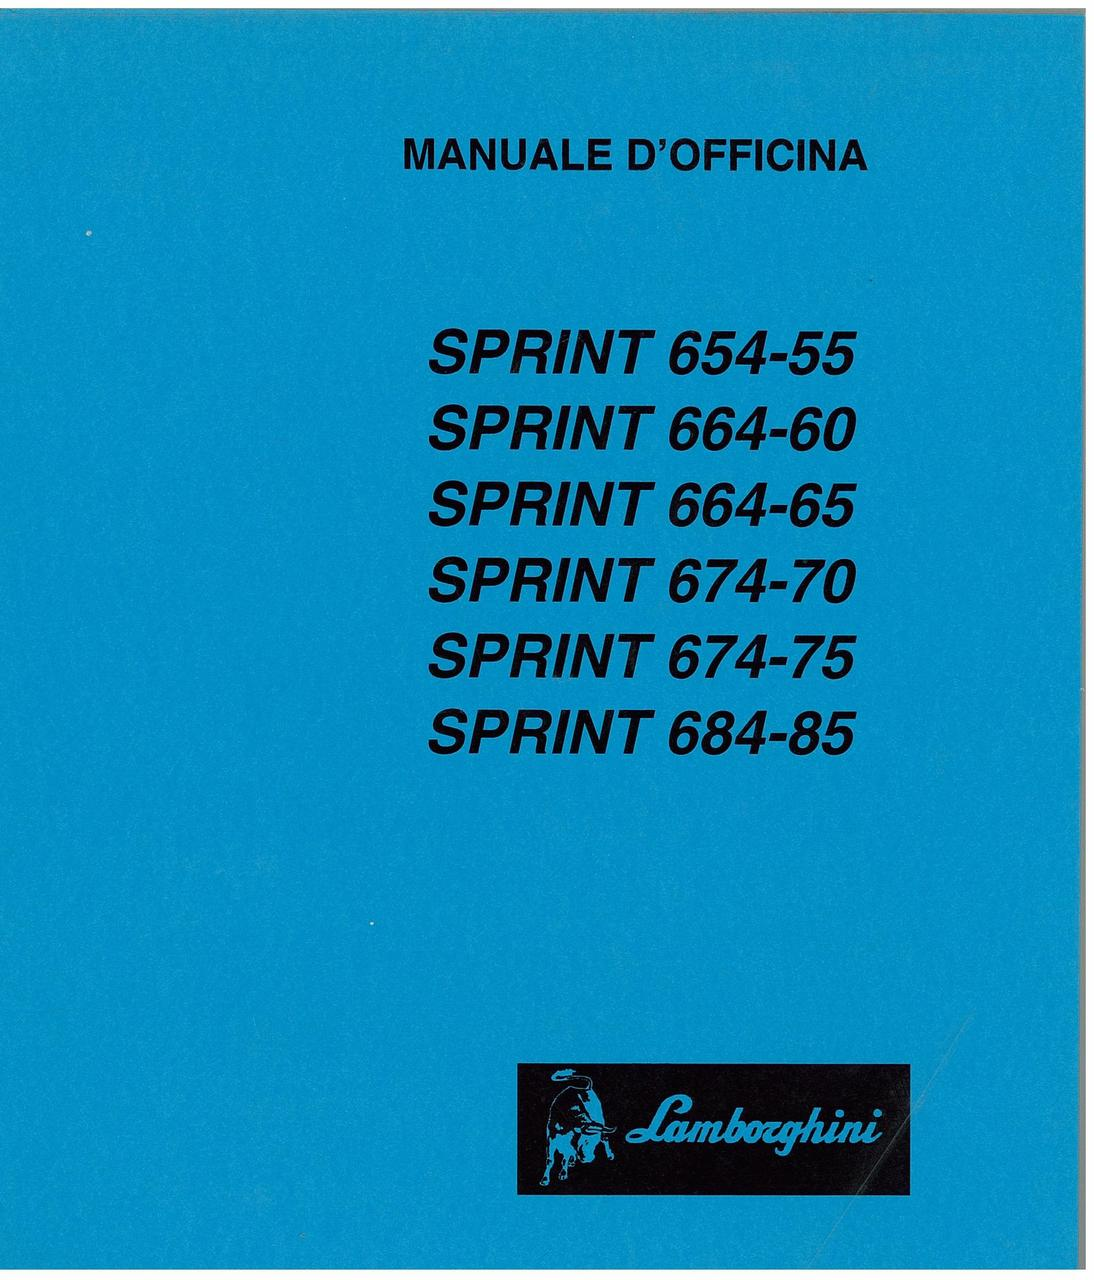 SPRINT 654.55 - 664.60 - 664.65 - 674.70 - 674.75 - 684.85 - Manuale d'Officina